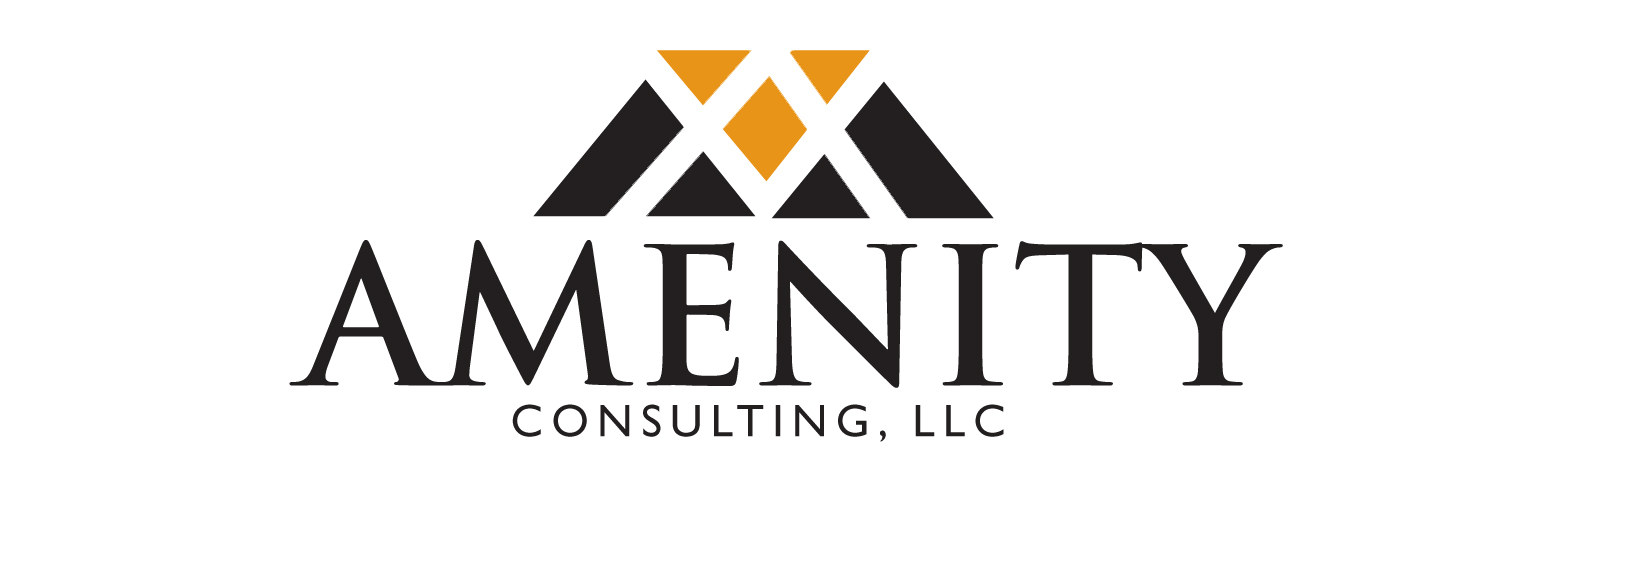 Amenity Consulting Jobs with Part-Time, Telecommuting, or Flexible ...